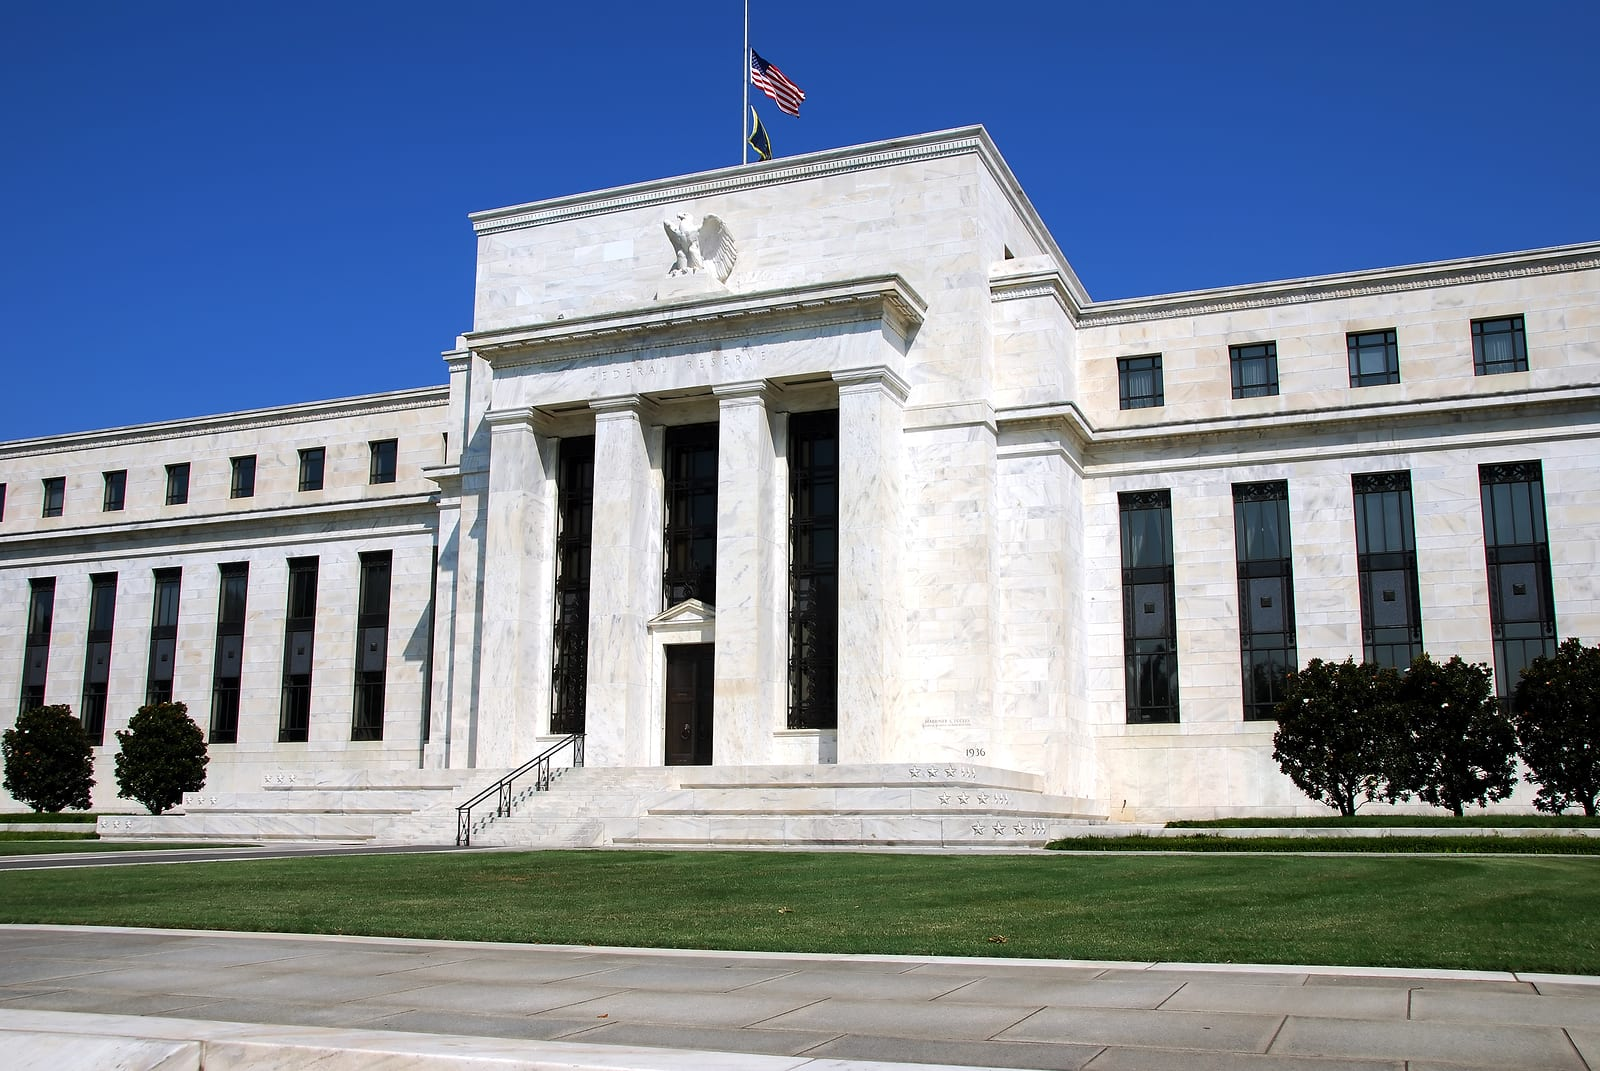 Federal Reserve Board announces approval of application by Chemical Financial Corporation